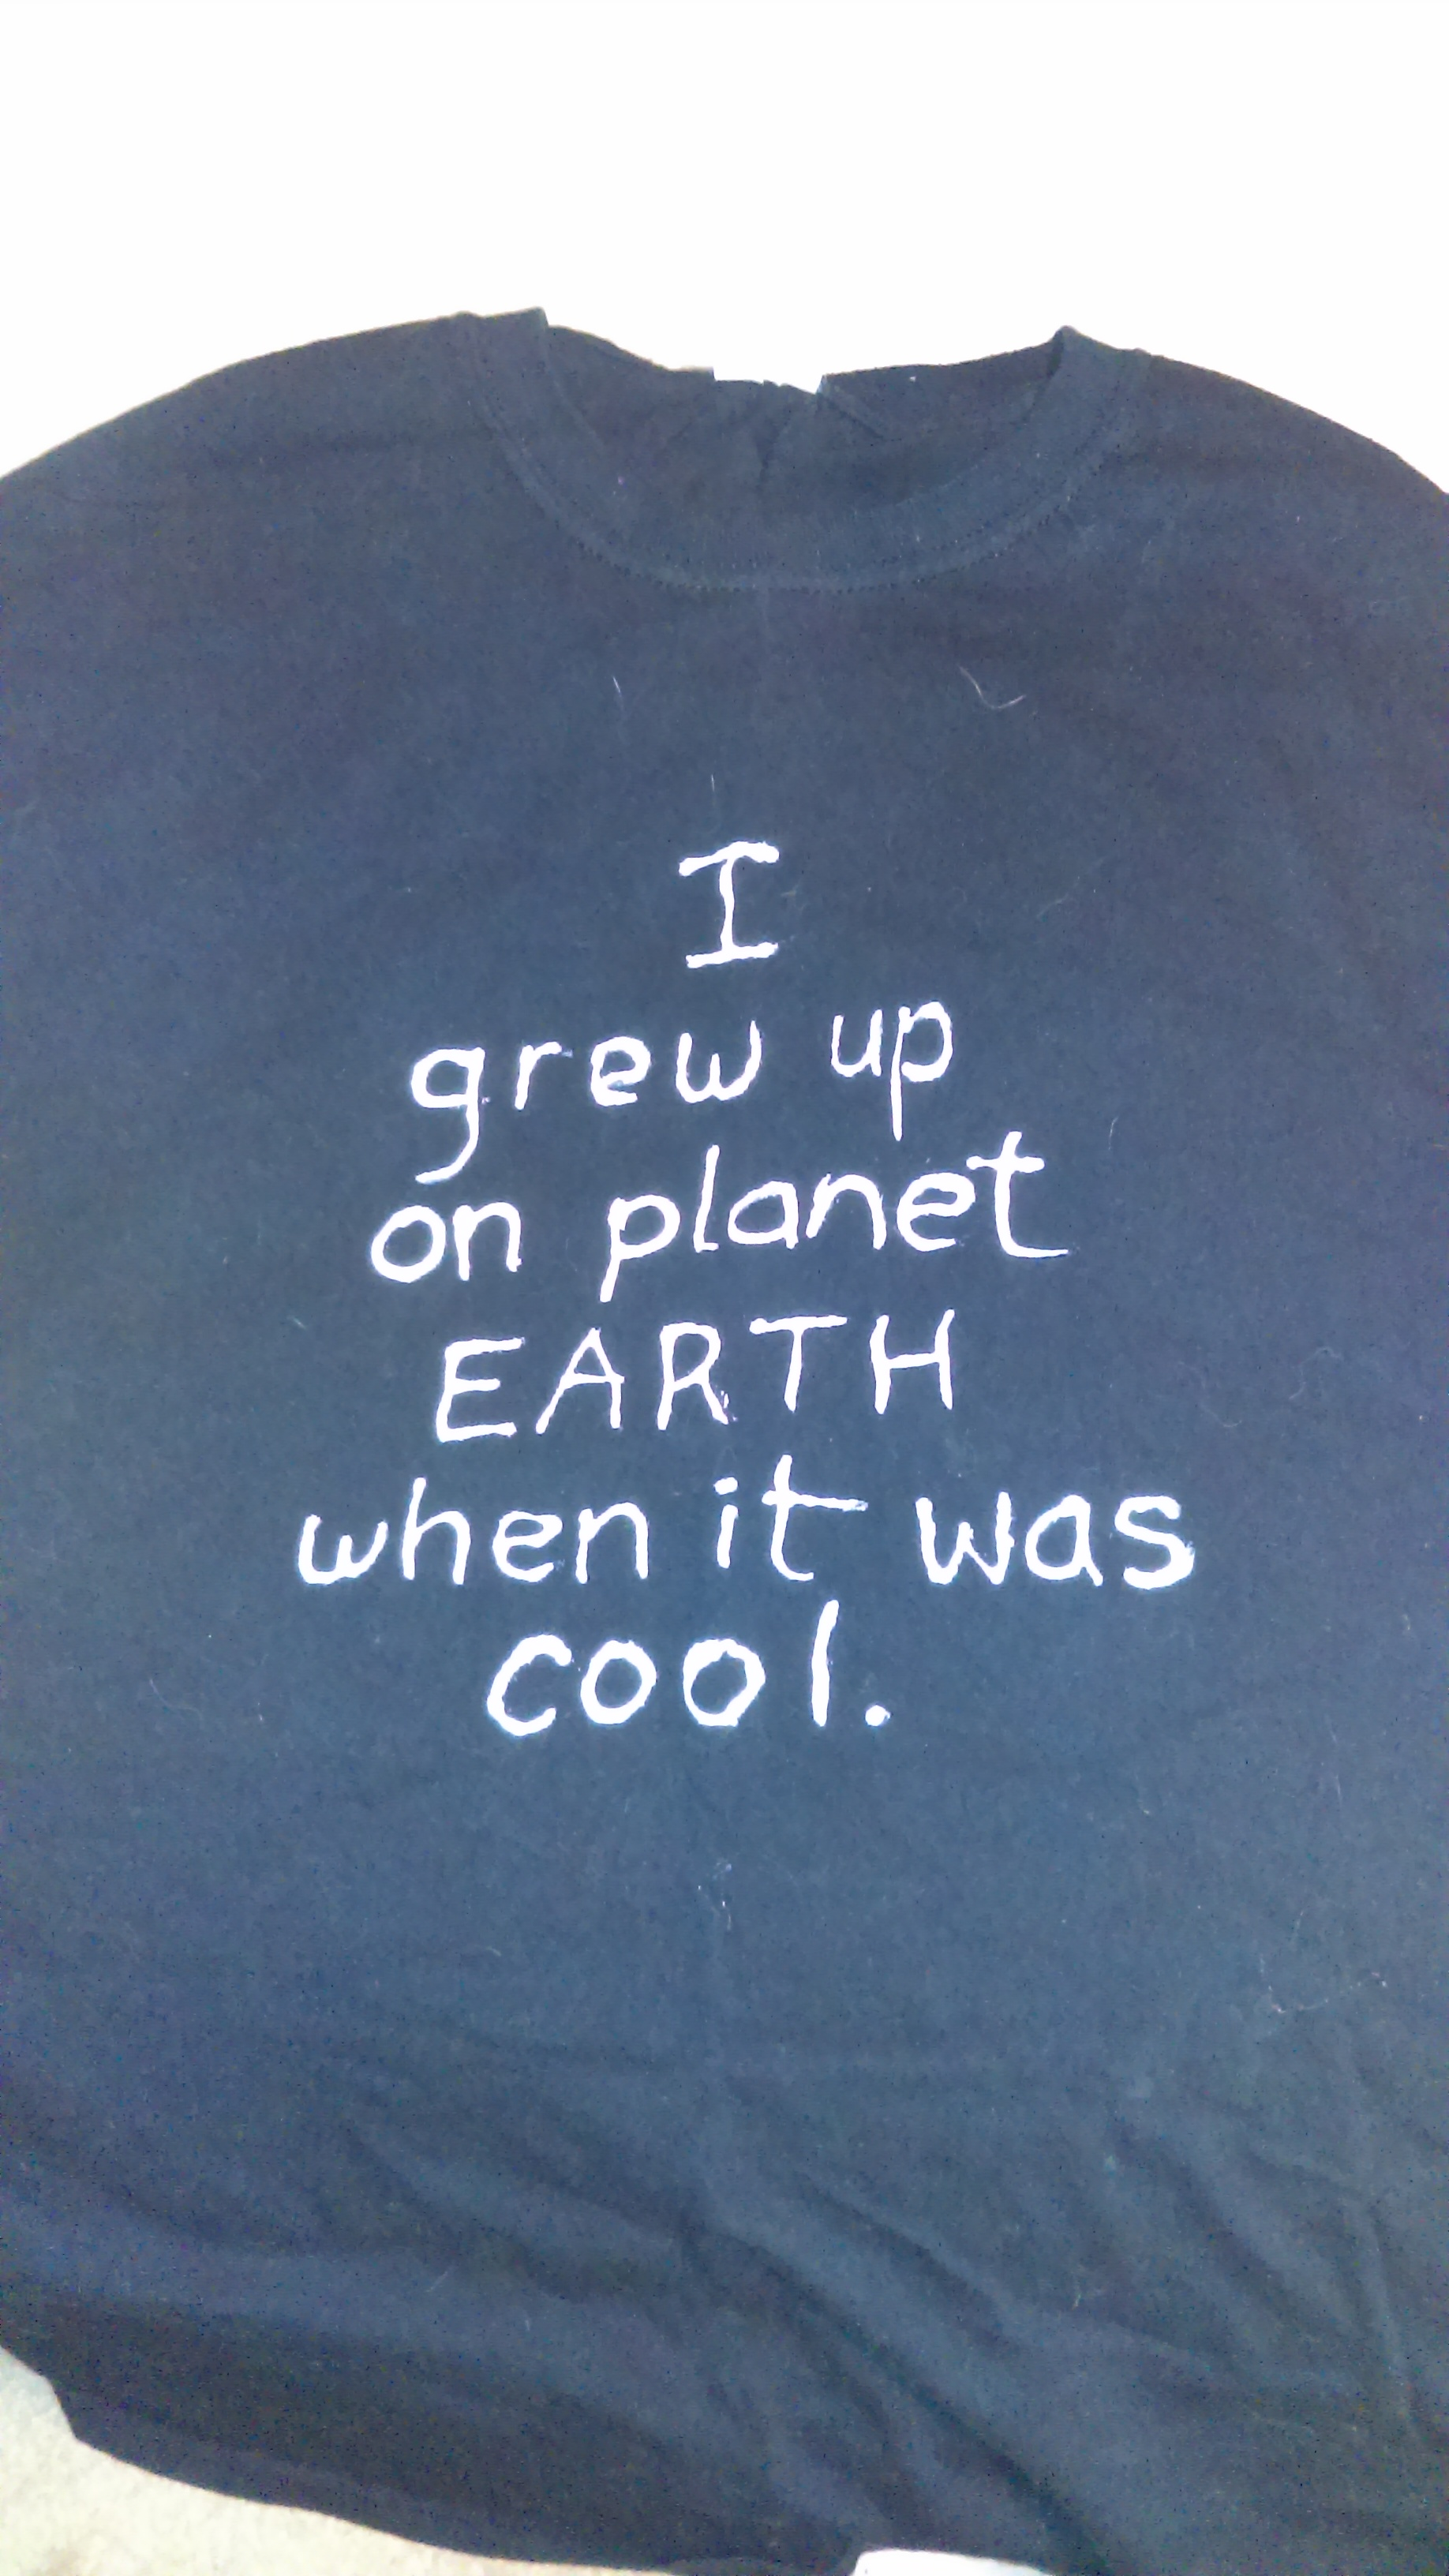 I grew up on Earth